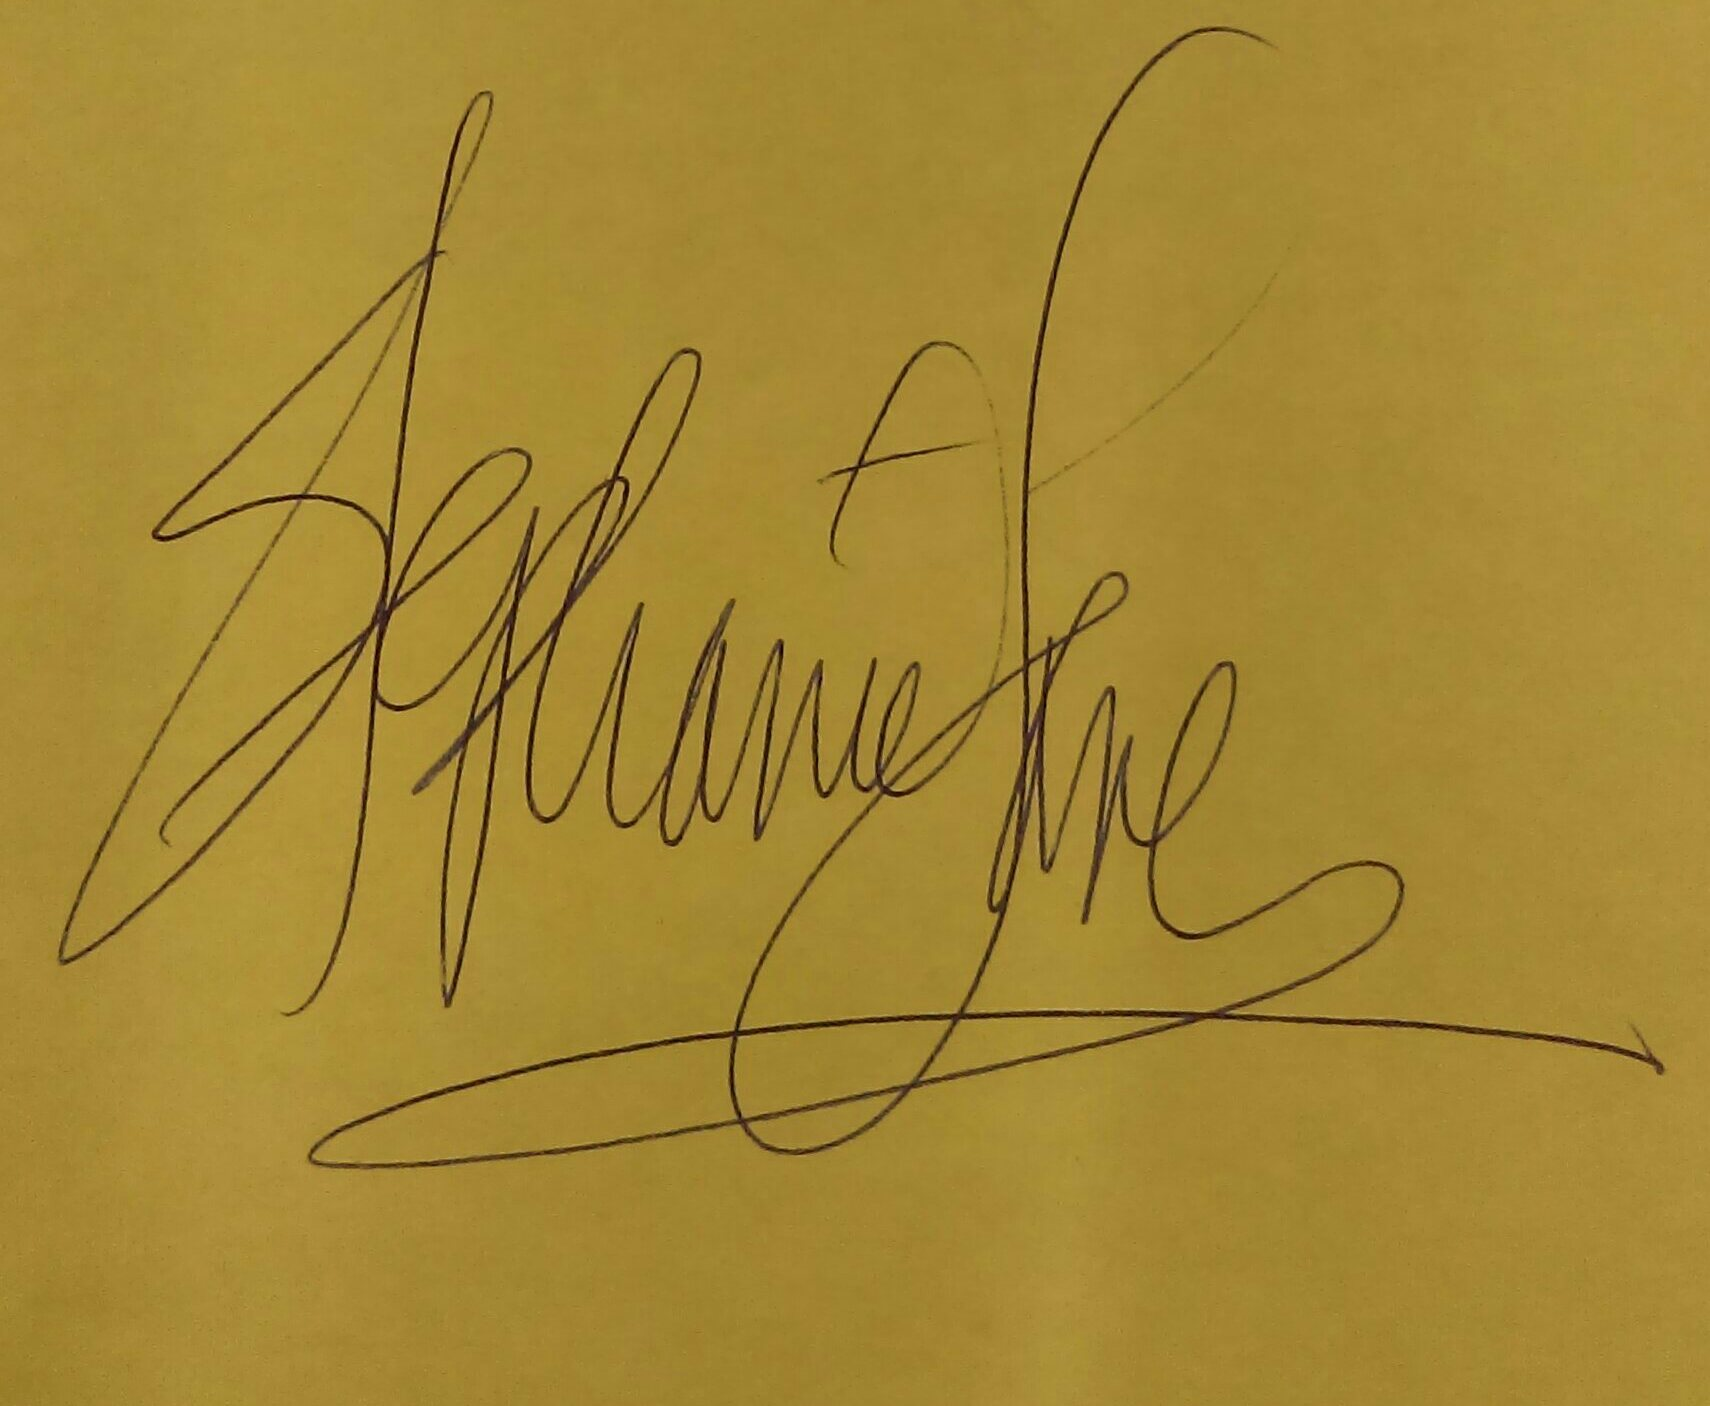 Stephanie Lane's Signature